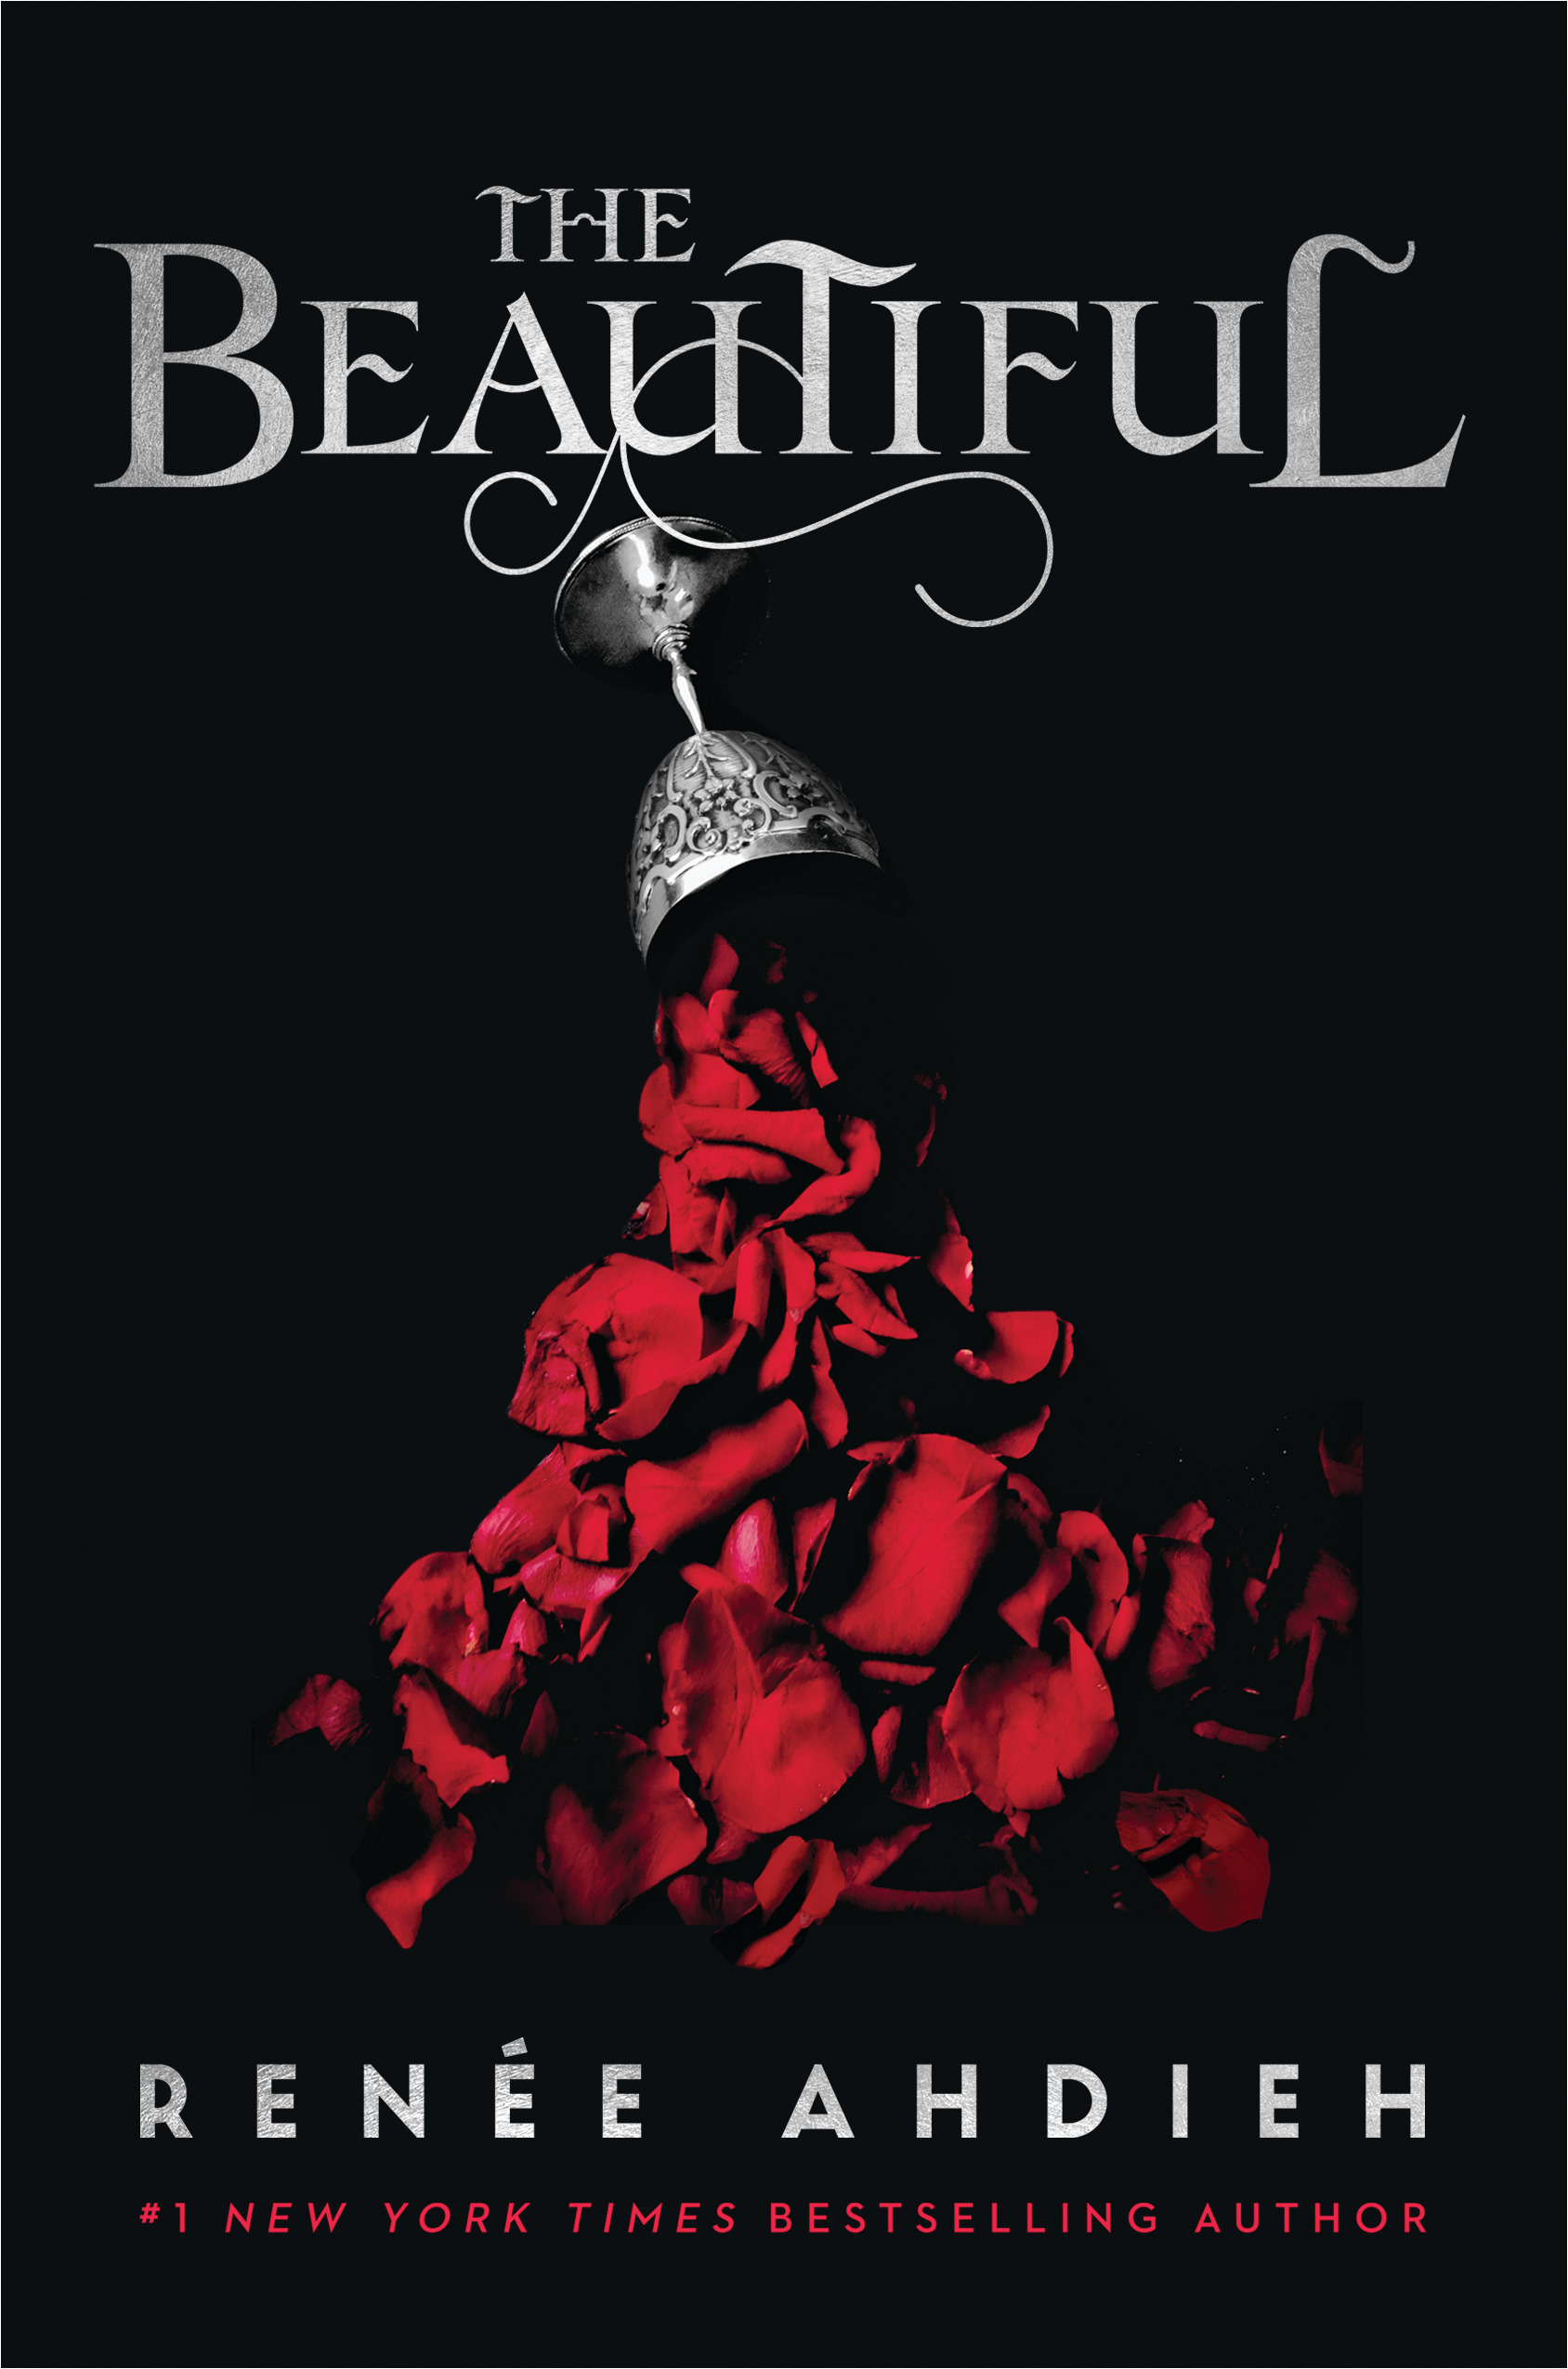 9781524738174_The Beautiful_Final Cover.jpg